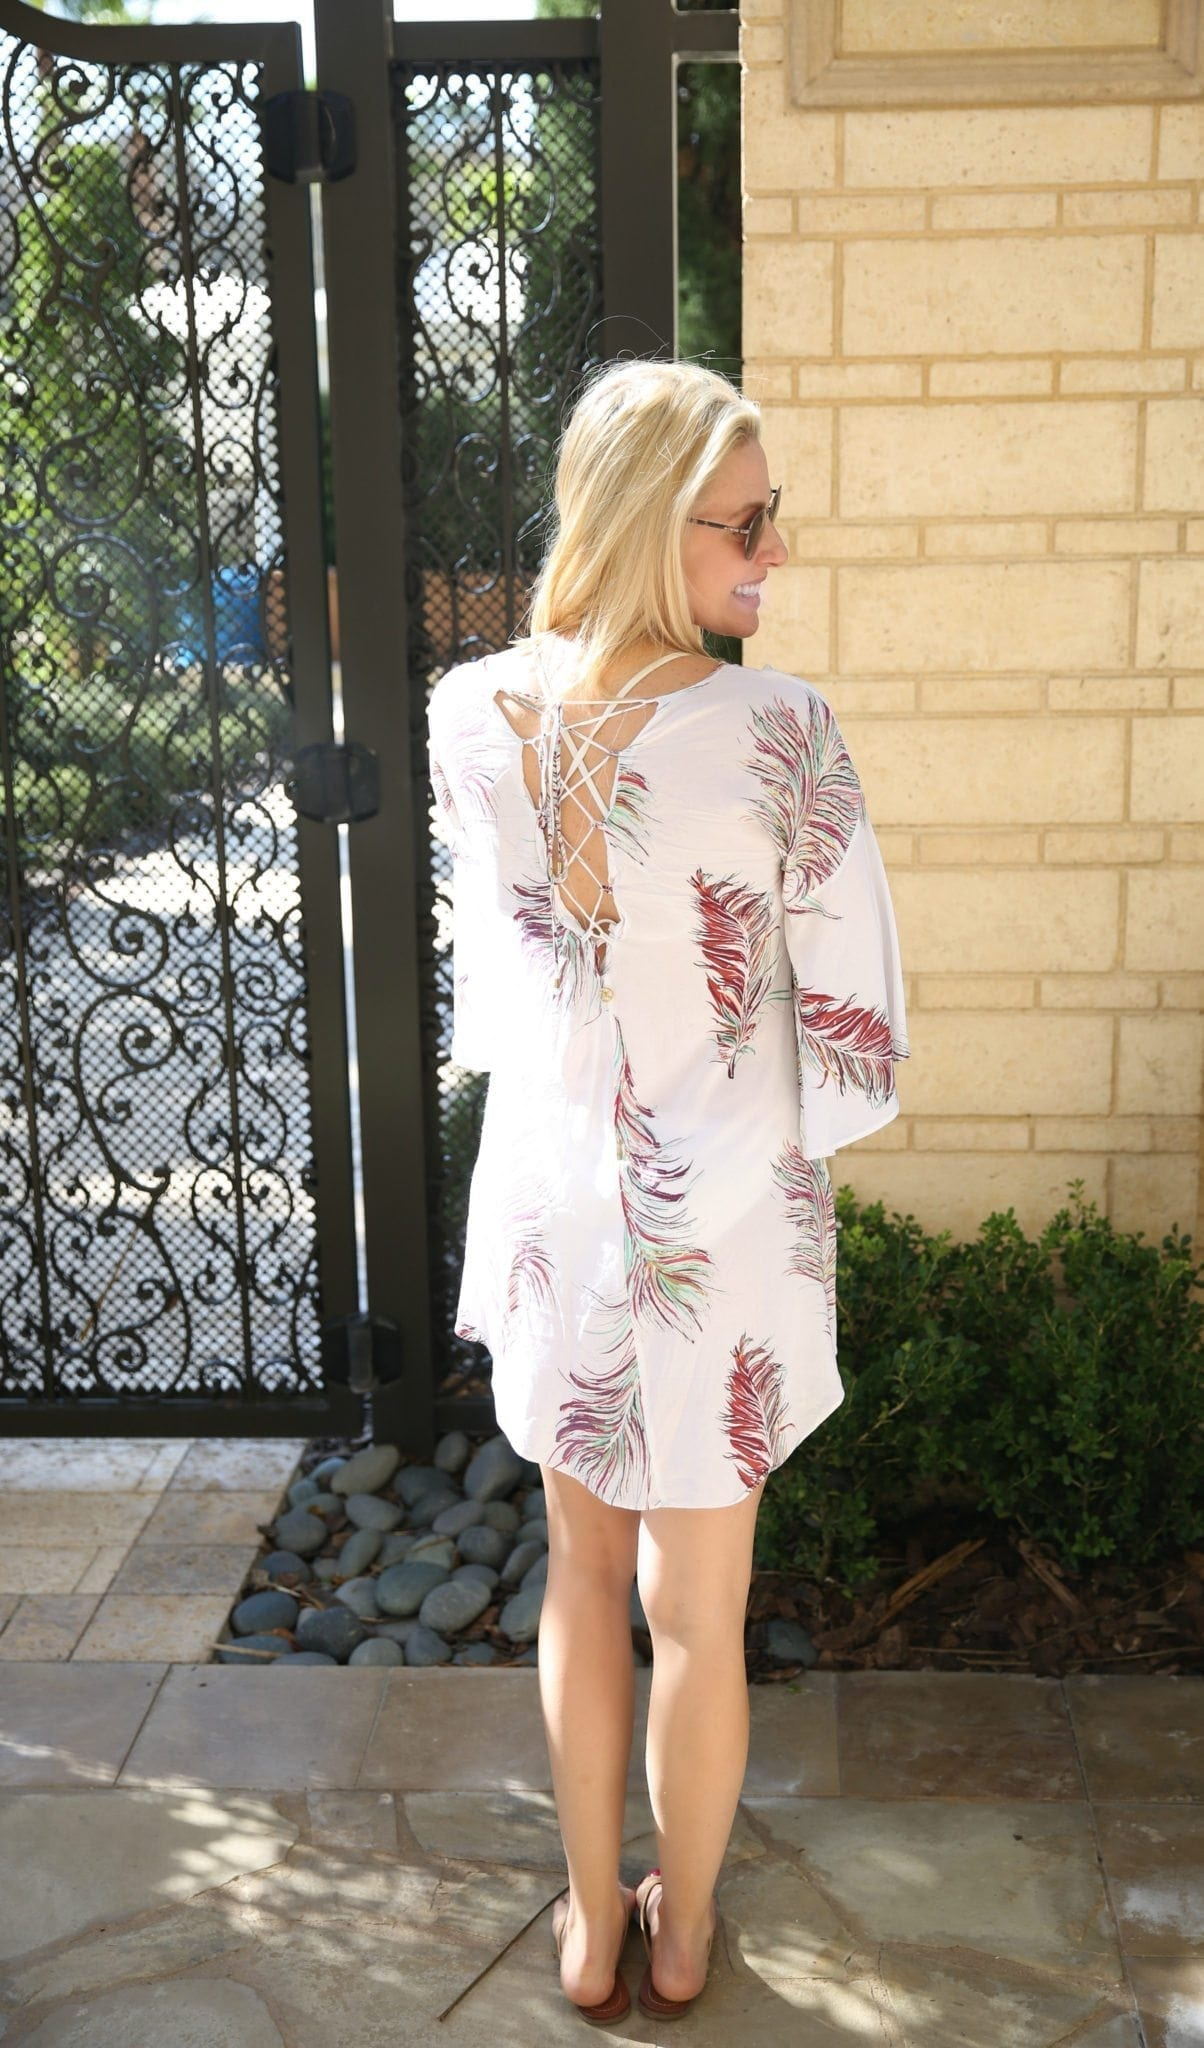 Vix bathing suit coverup with lace up back and oliver peoples sunglasses by four seasons orlando adult only pool